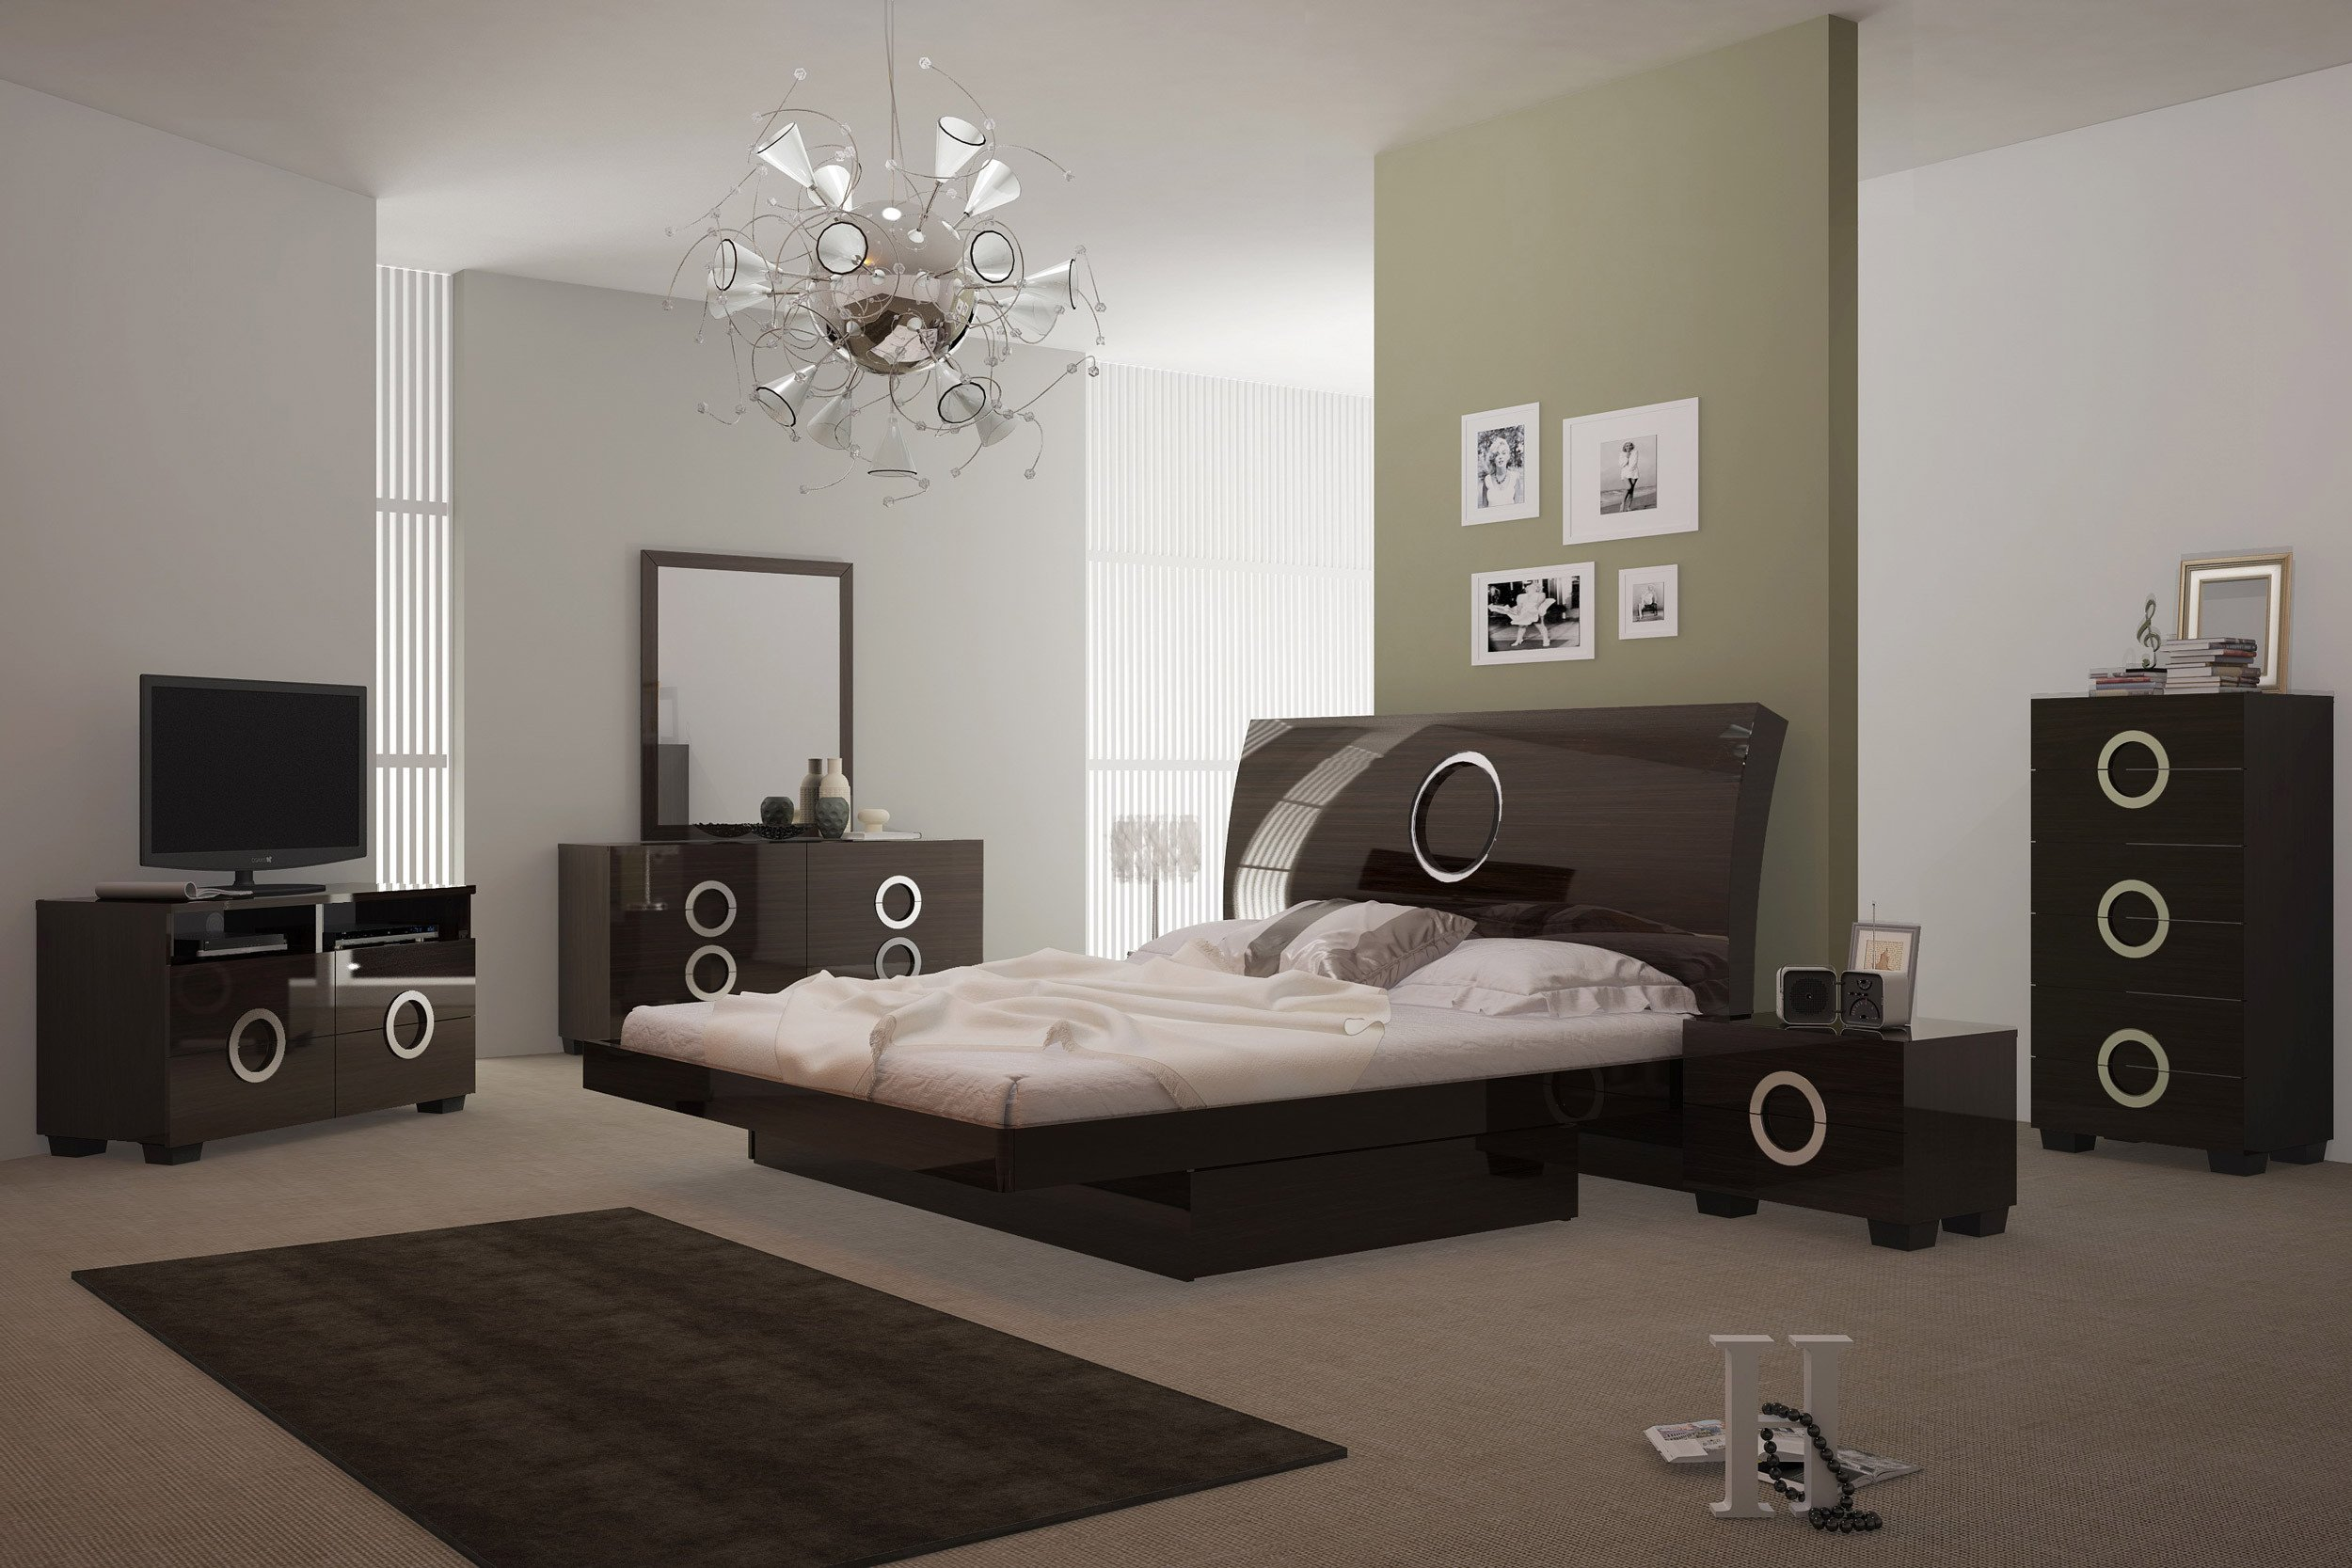 White Lacquer Bedroom Set New Monte Carlo Bedroom Set In Wenge Lacquer Finish